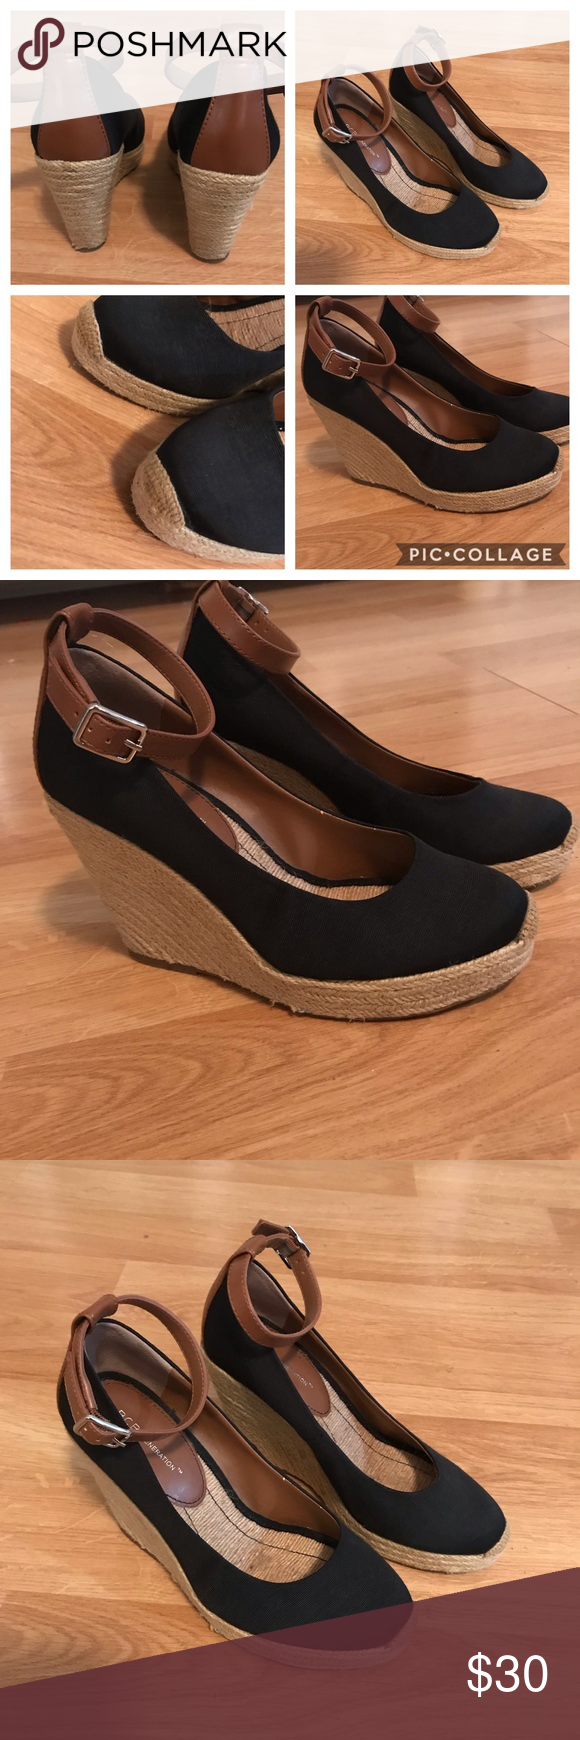 a69003c38a Black Espadrille Wedge Shoes sz 9 BCBG Generation Classy espadrilles. High  wedge. Sz 9. Black w tan strap and faux leather on back heel. Classy.